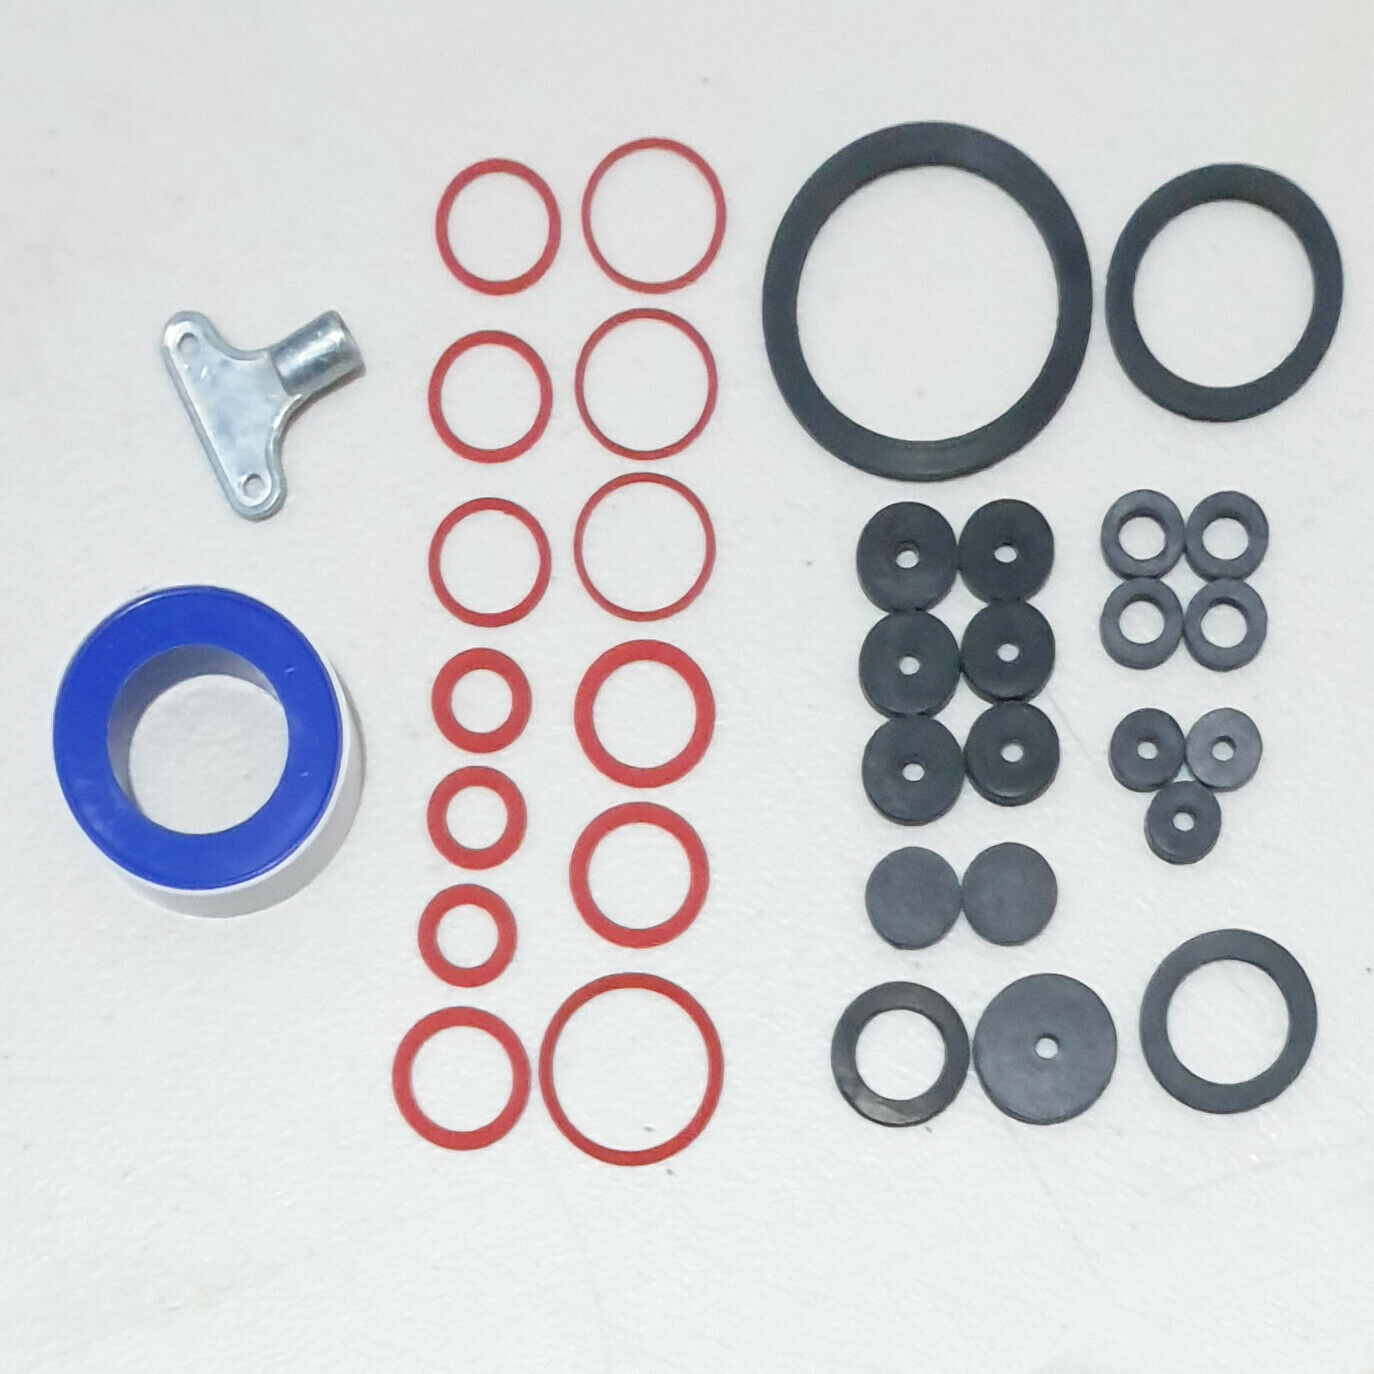 Tool Car Washer Other Motorcycle Accessories O-Rings /&Amp; O-Ring Kits 225Pcs